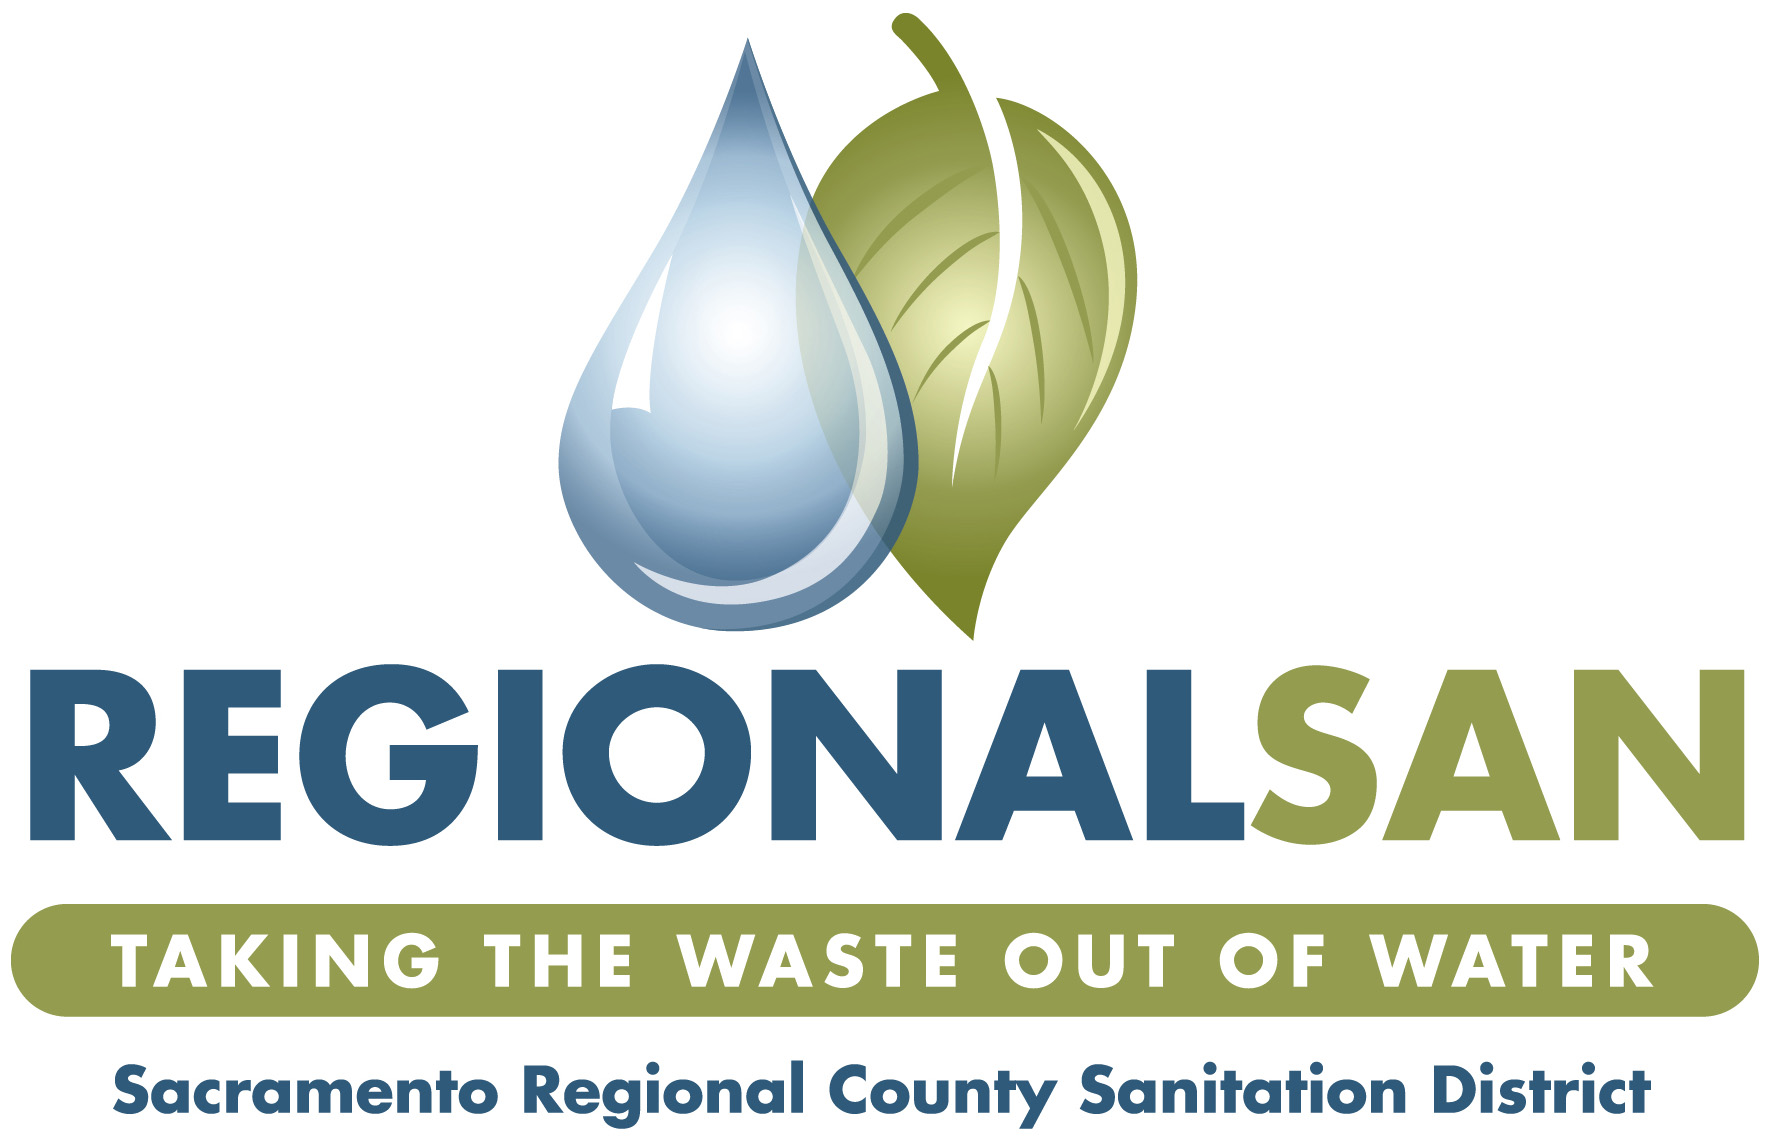 Sacramento Regional County Sanitation District